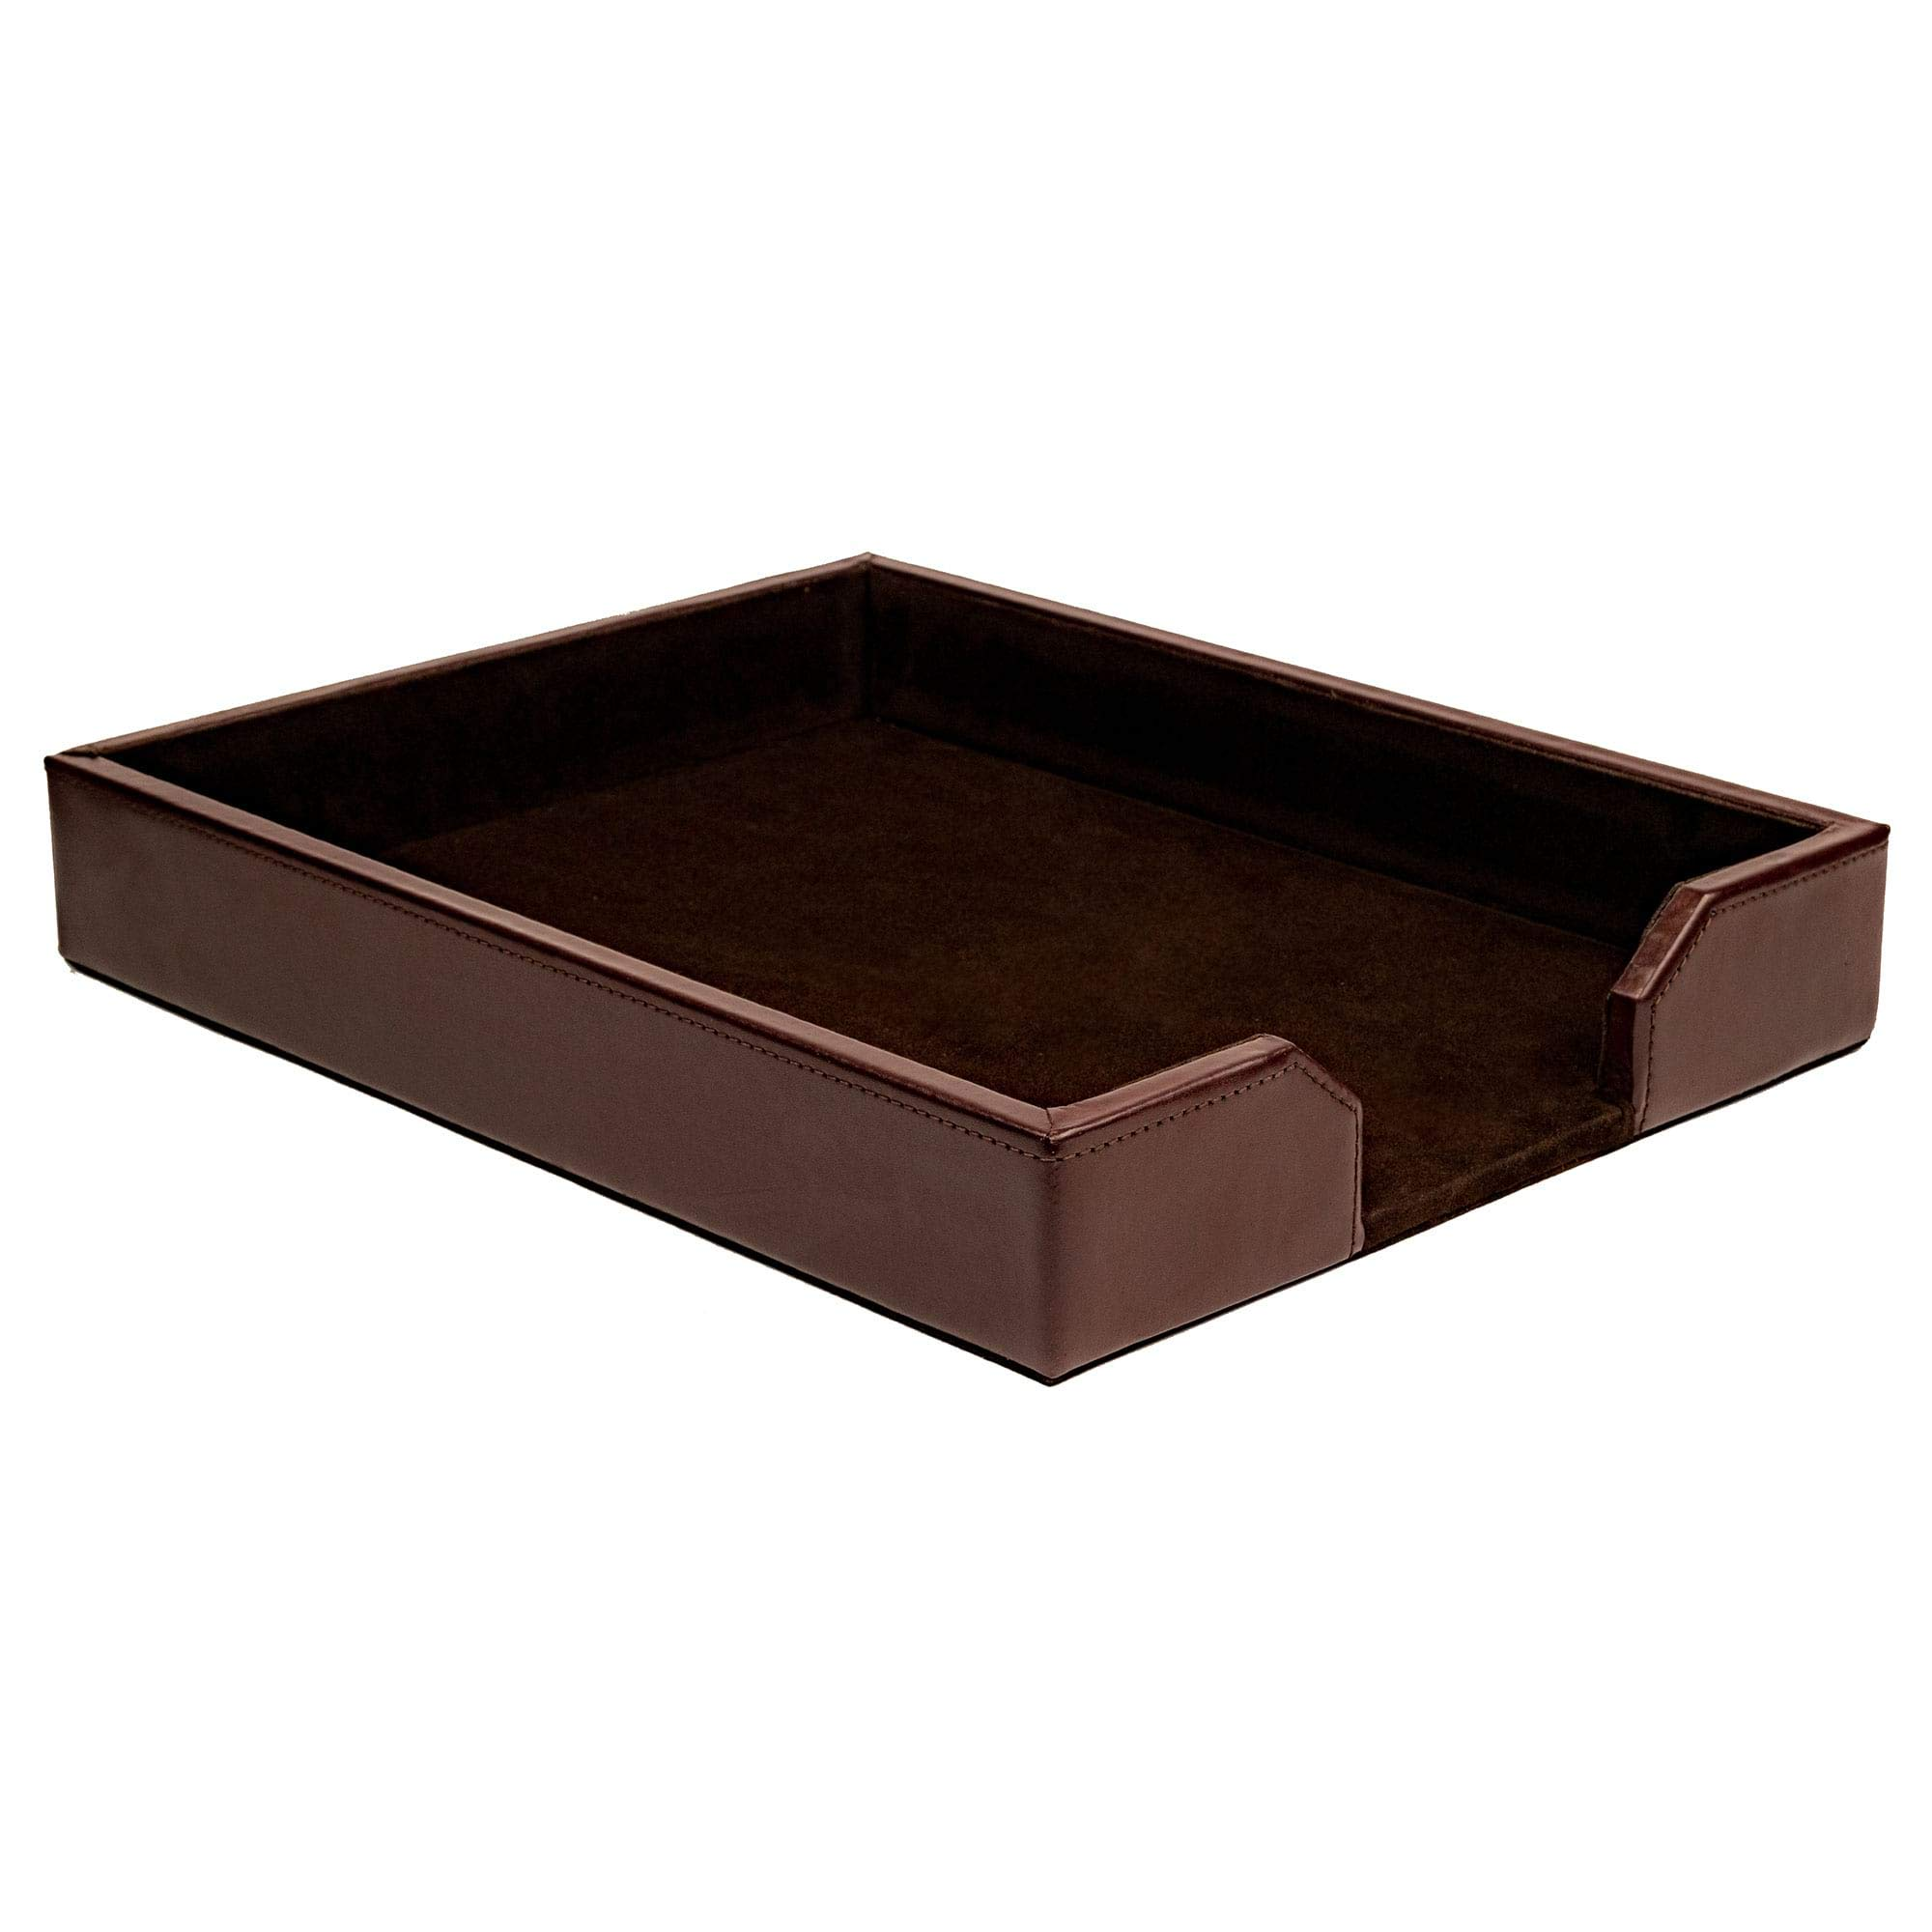 Dacasso Dark Brown Bonded Leather Letter Tray by Dacasso